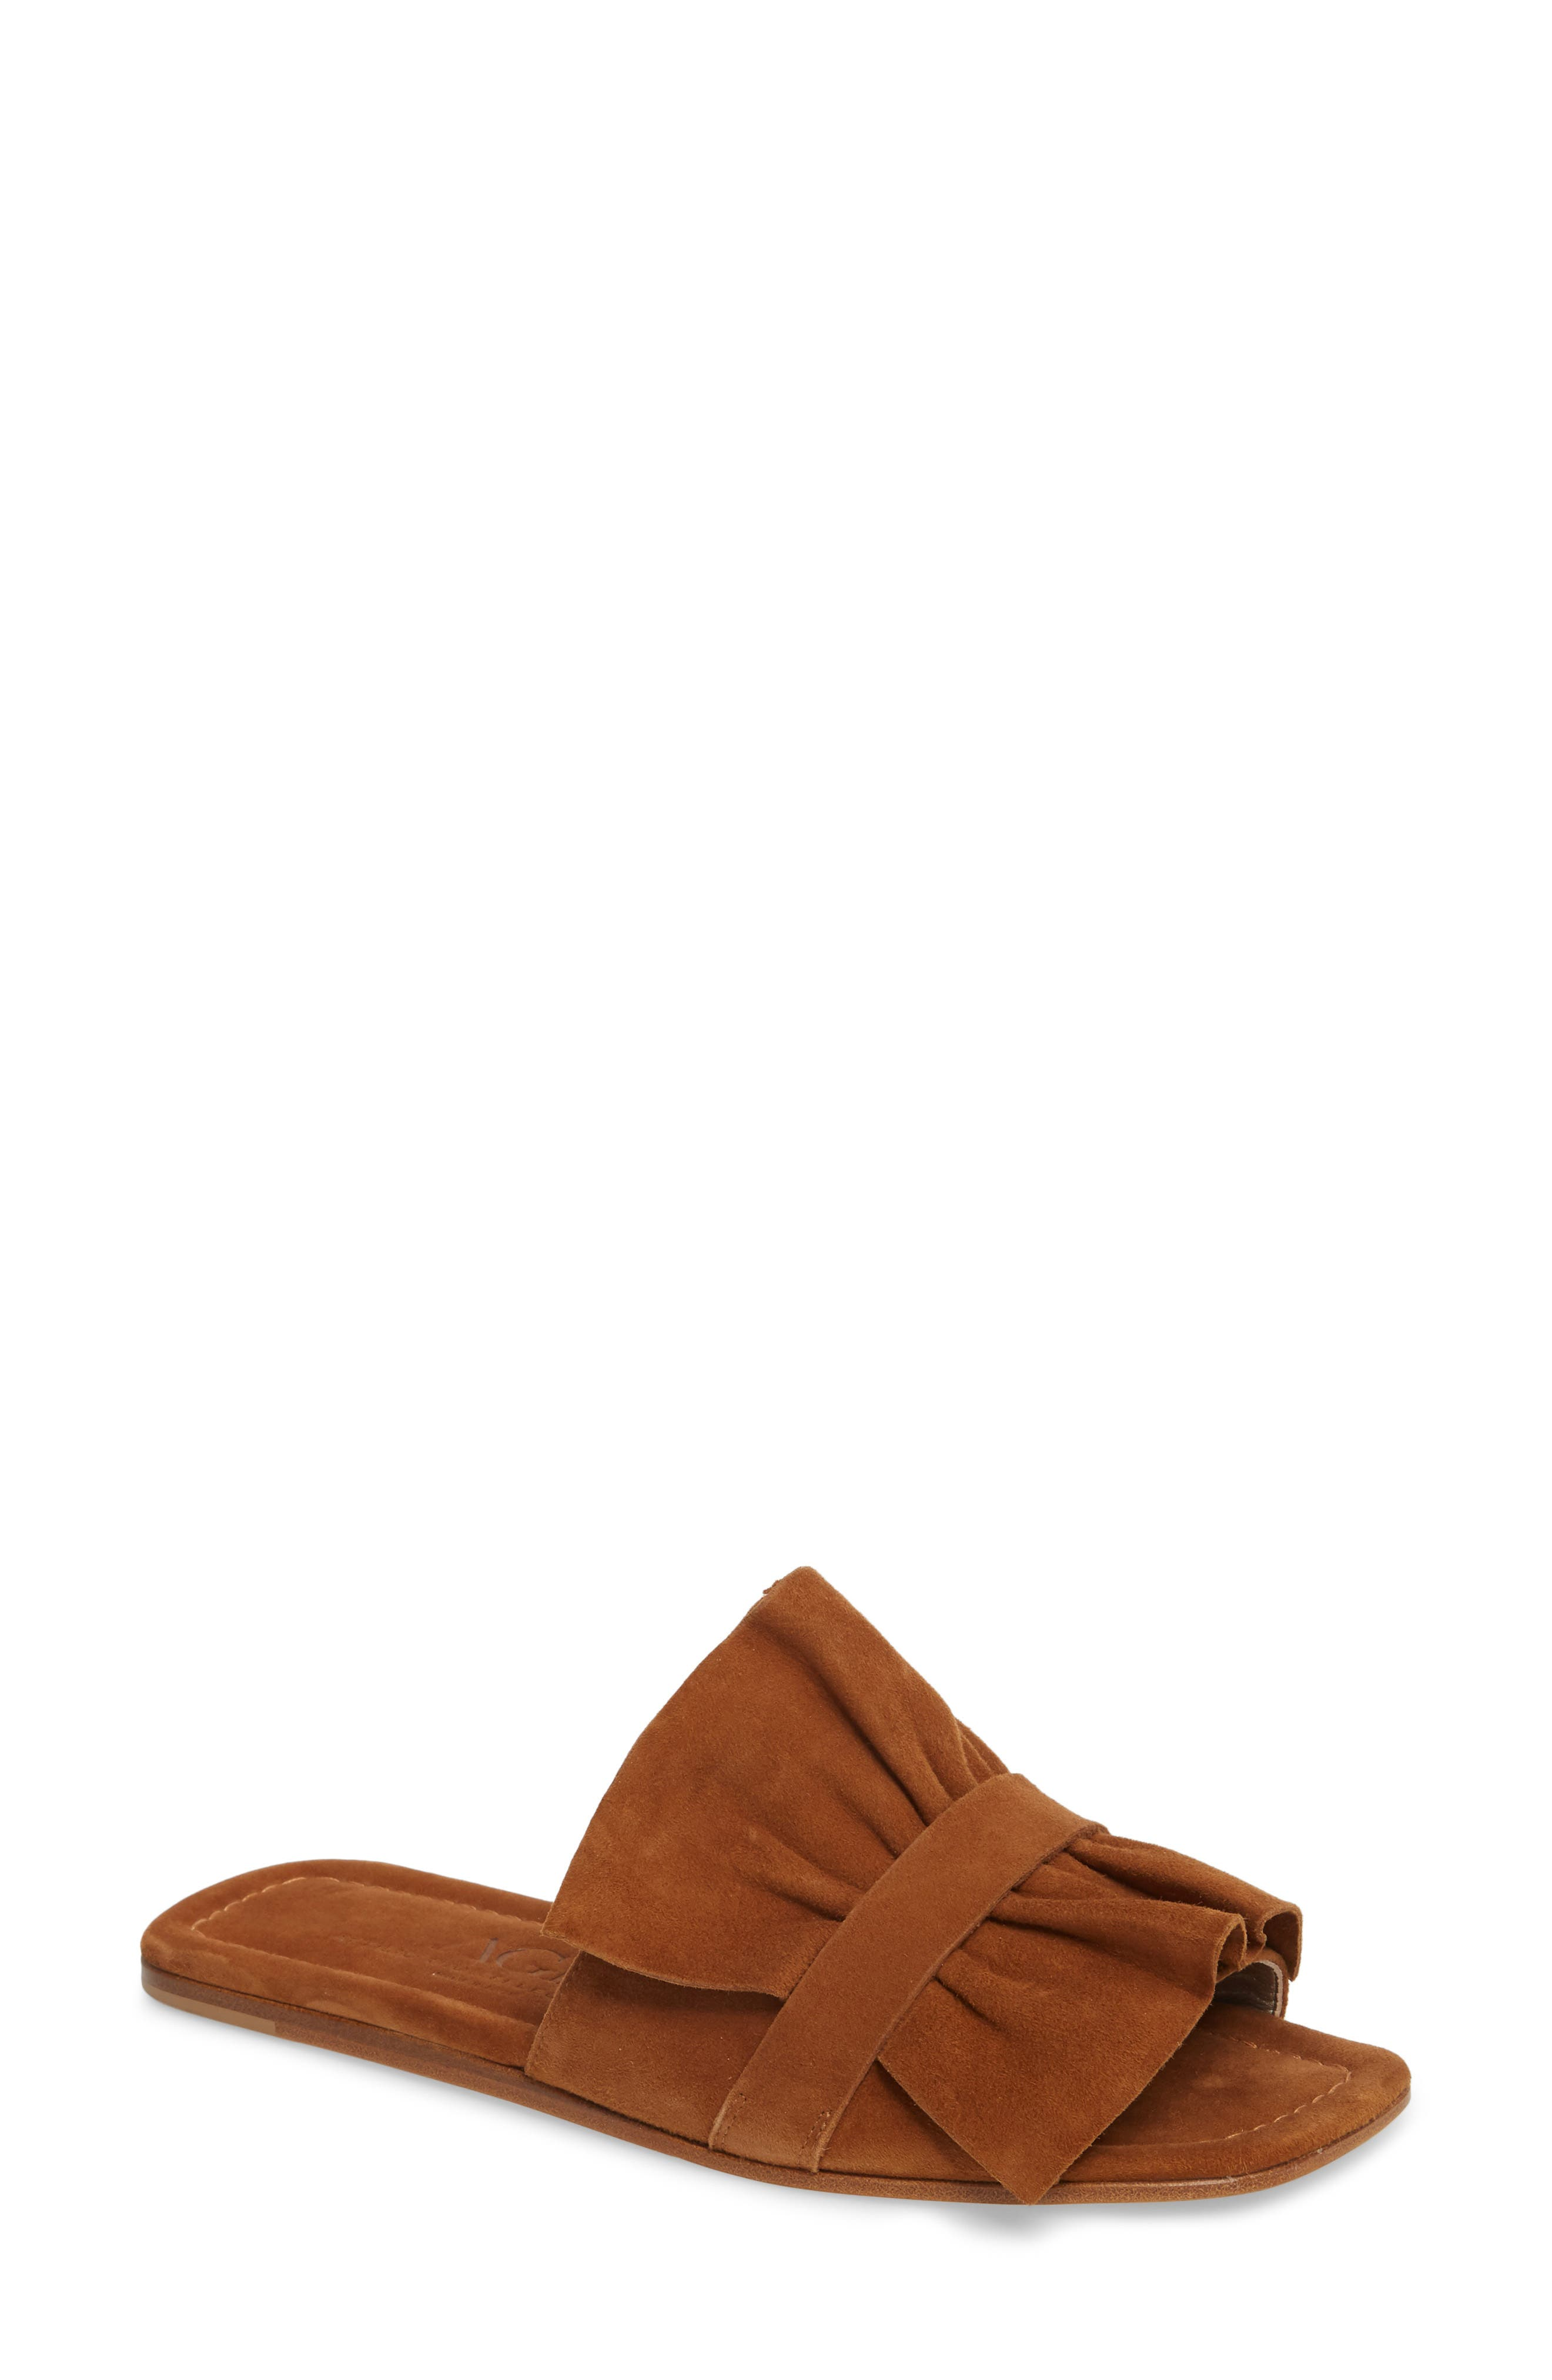 Ruched Slide Sandal,                             Main thumbnail 1, color,                             245